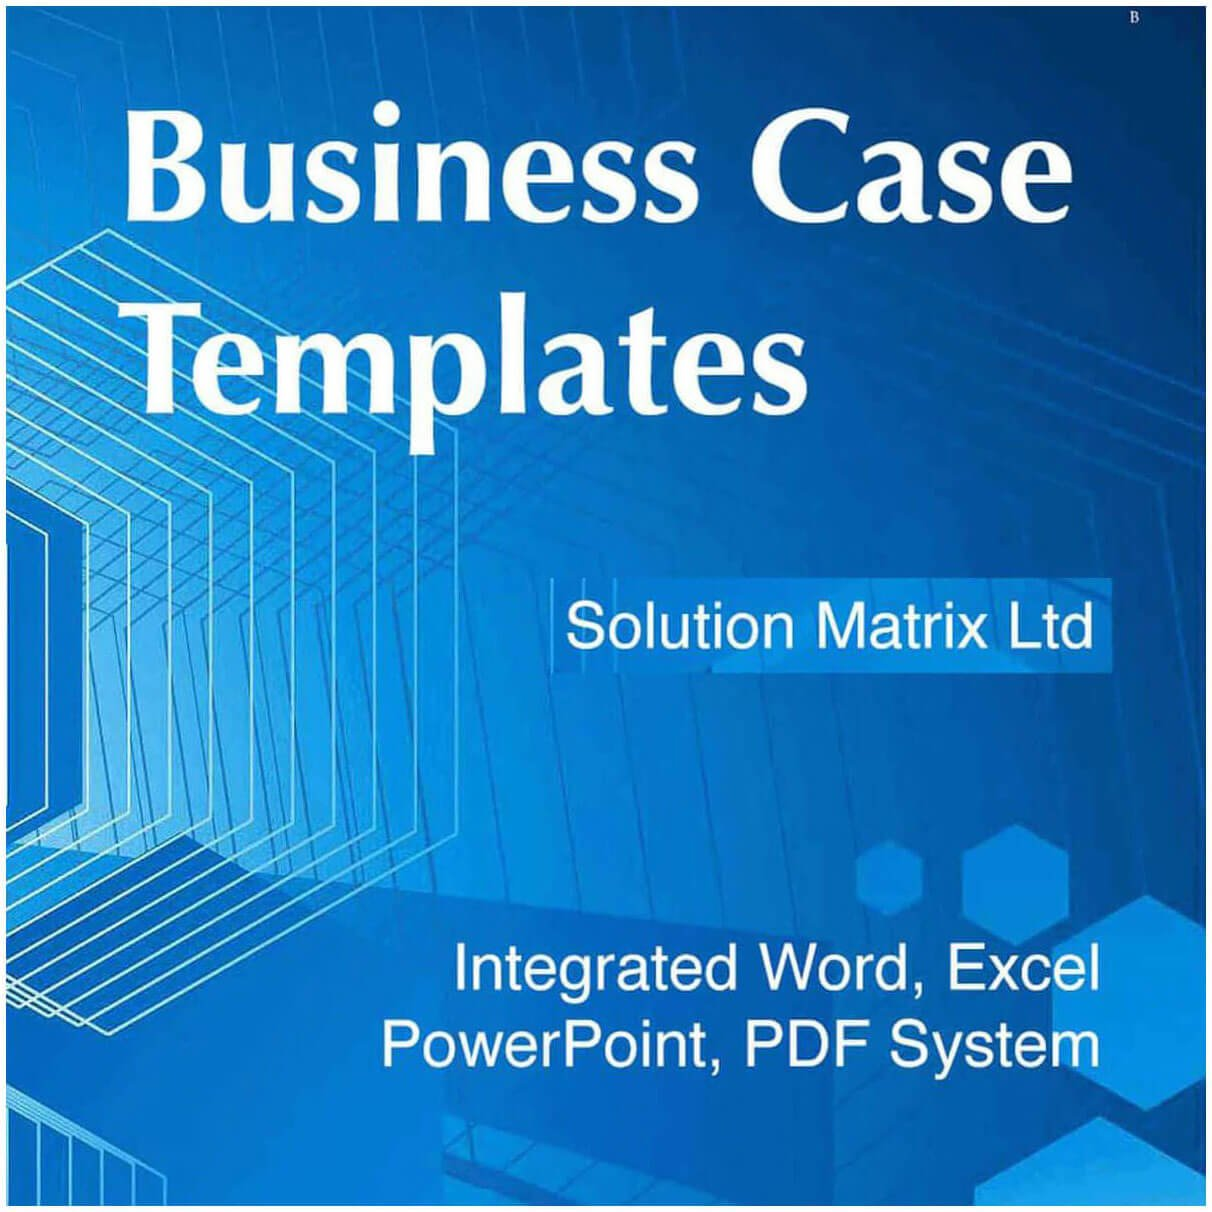 Business Case Analysis Content And Structure That Make The Case